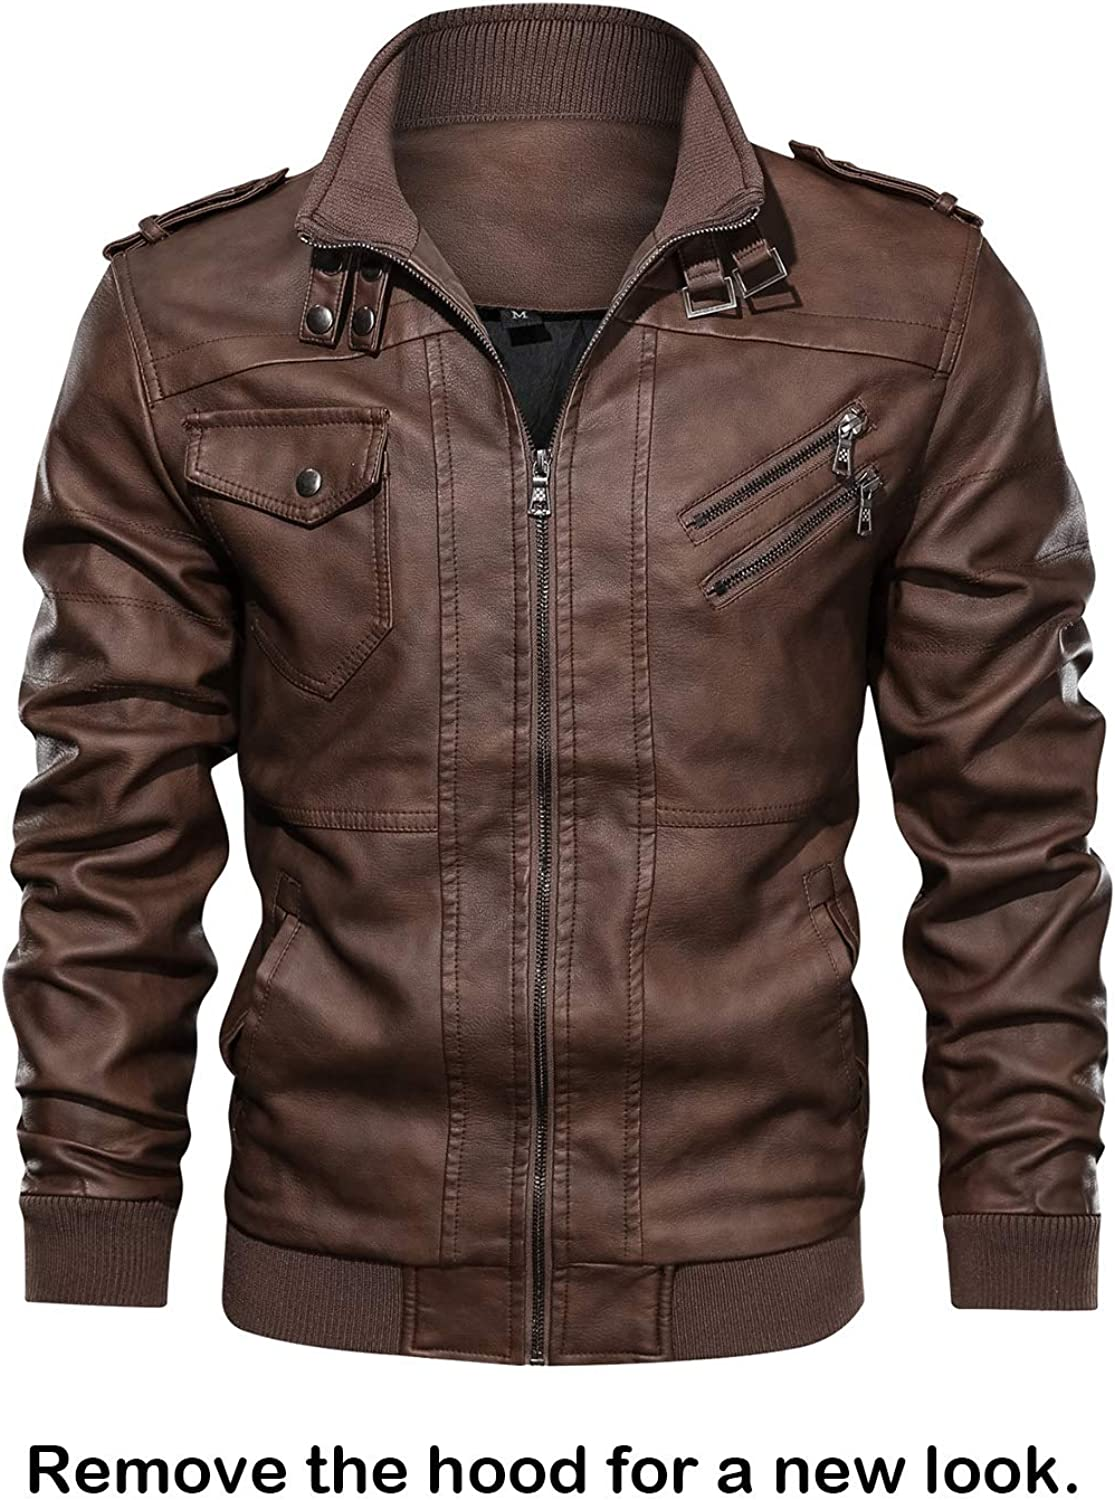 HOOD CREW Men/'s Casual Stand Collar PU Faux Leather Zip-Up Motorcycle Bomber Jacket with a Removable Hood